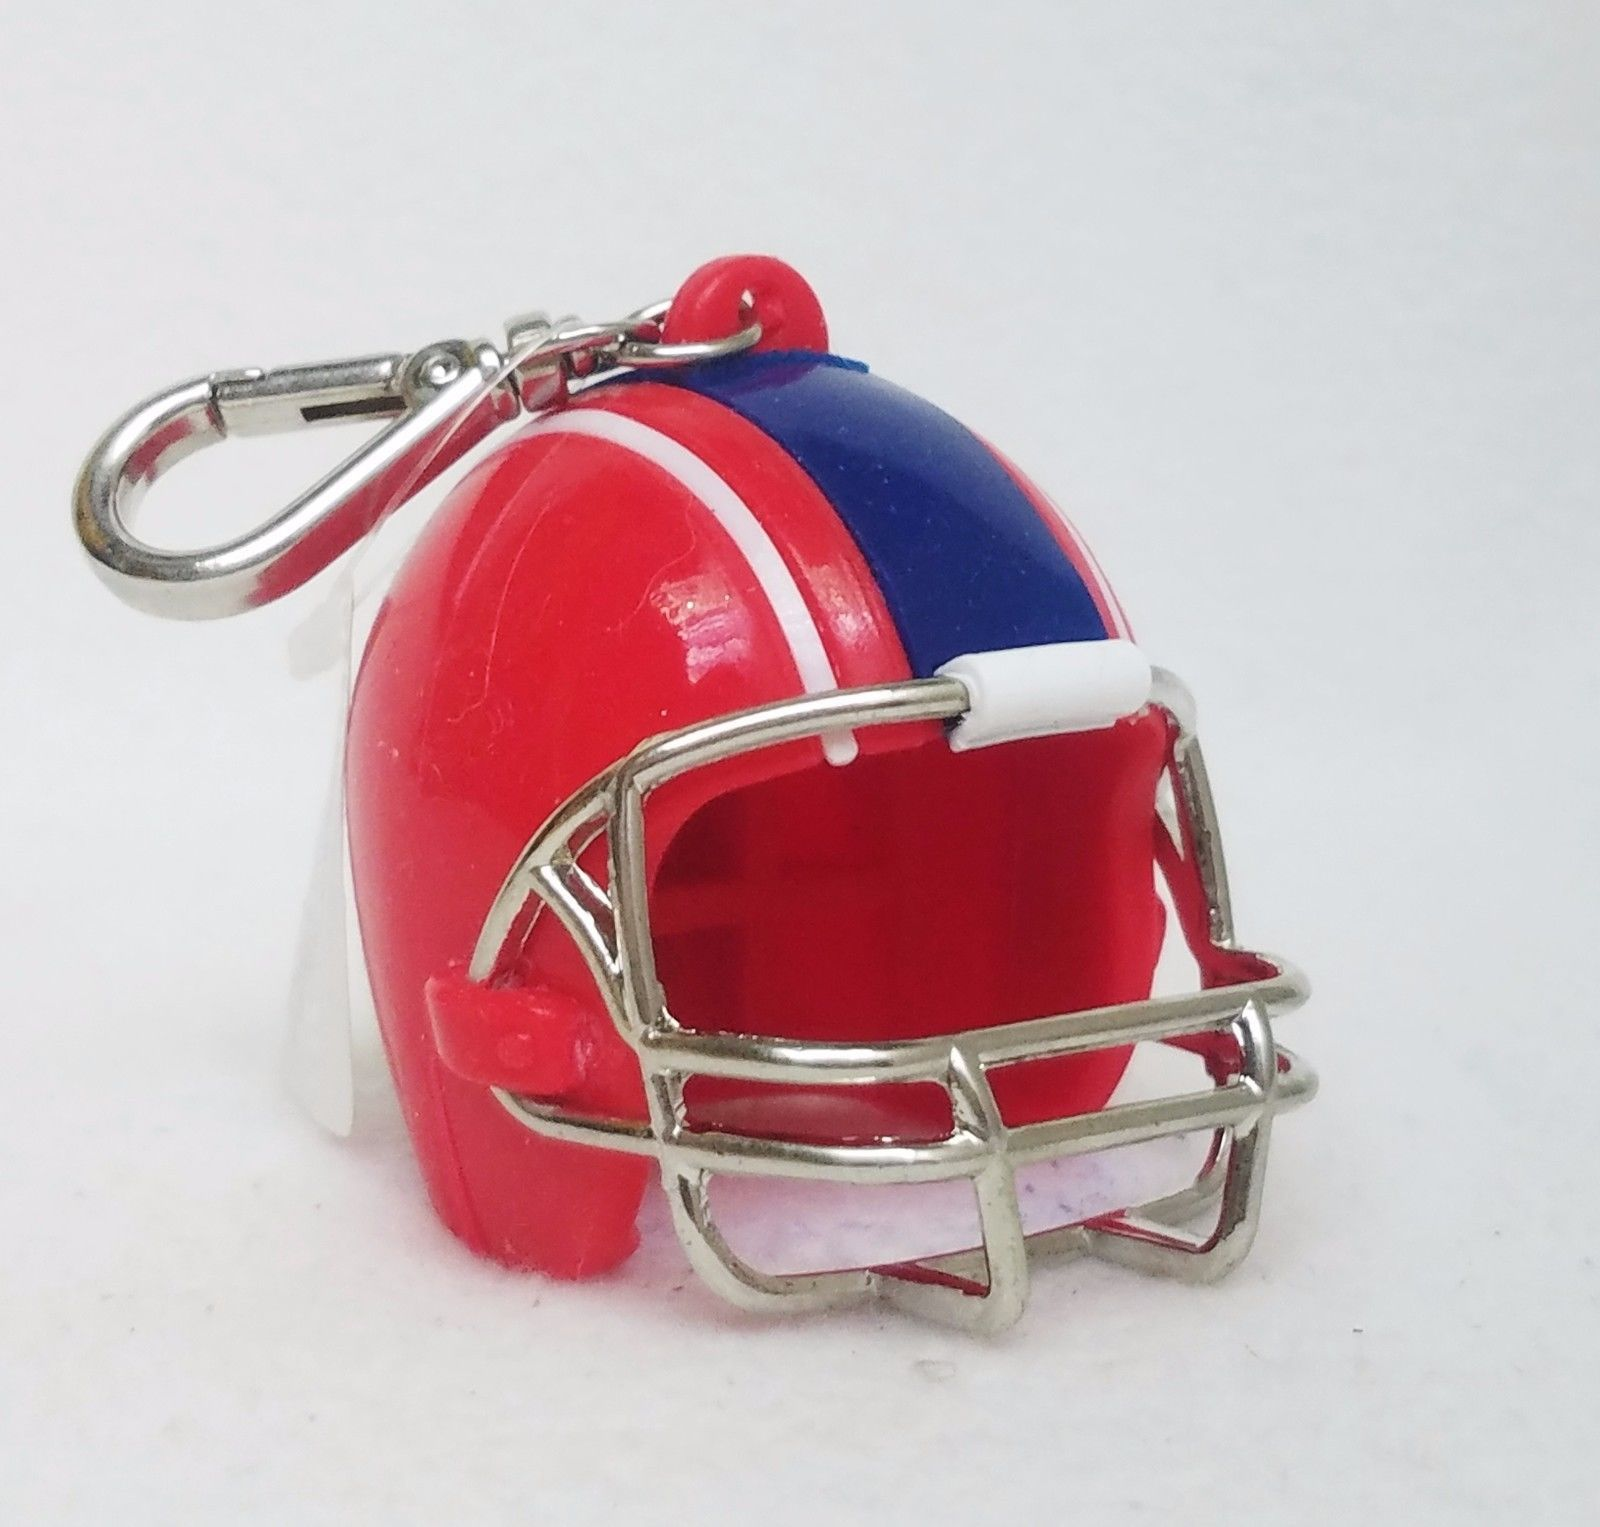 1 Bath Body Works Football Helmet Pocketbac Holder Case